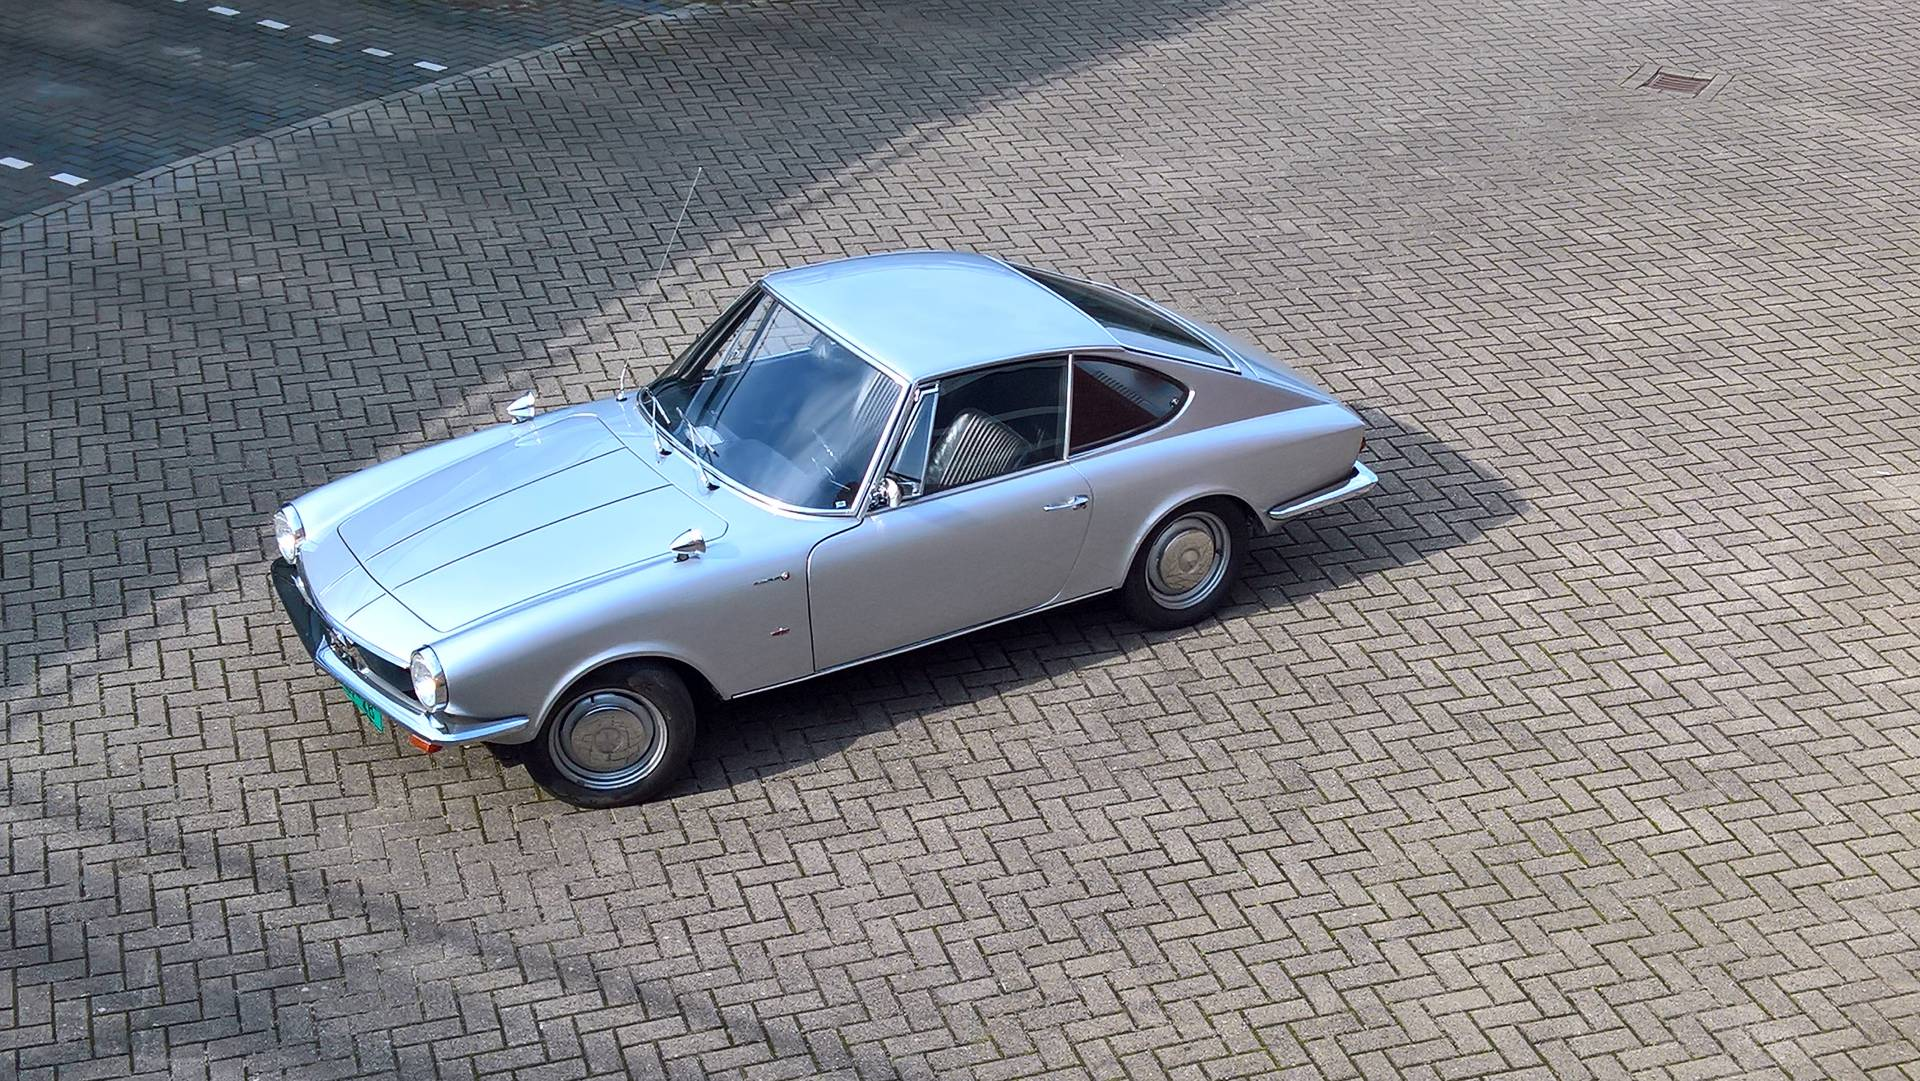 For Sale: Glas 1300 GT (1965) offered for GBP 31,470